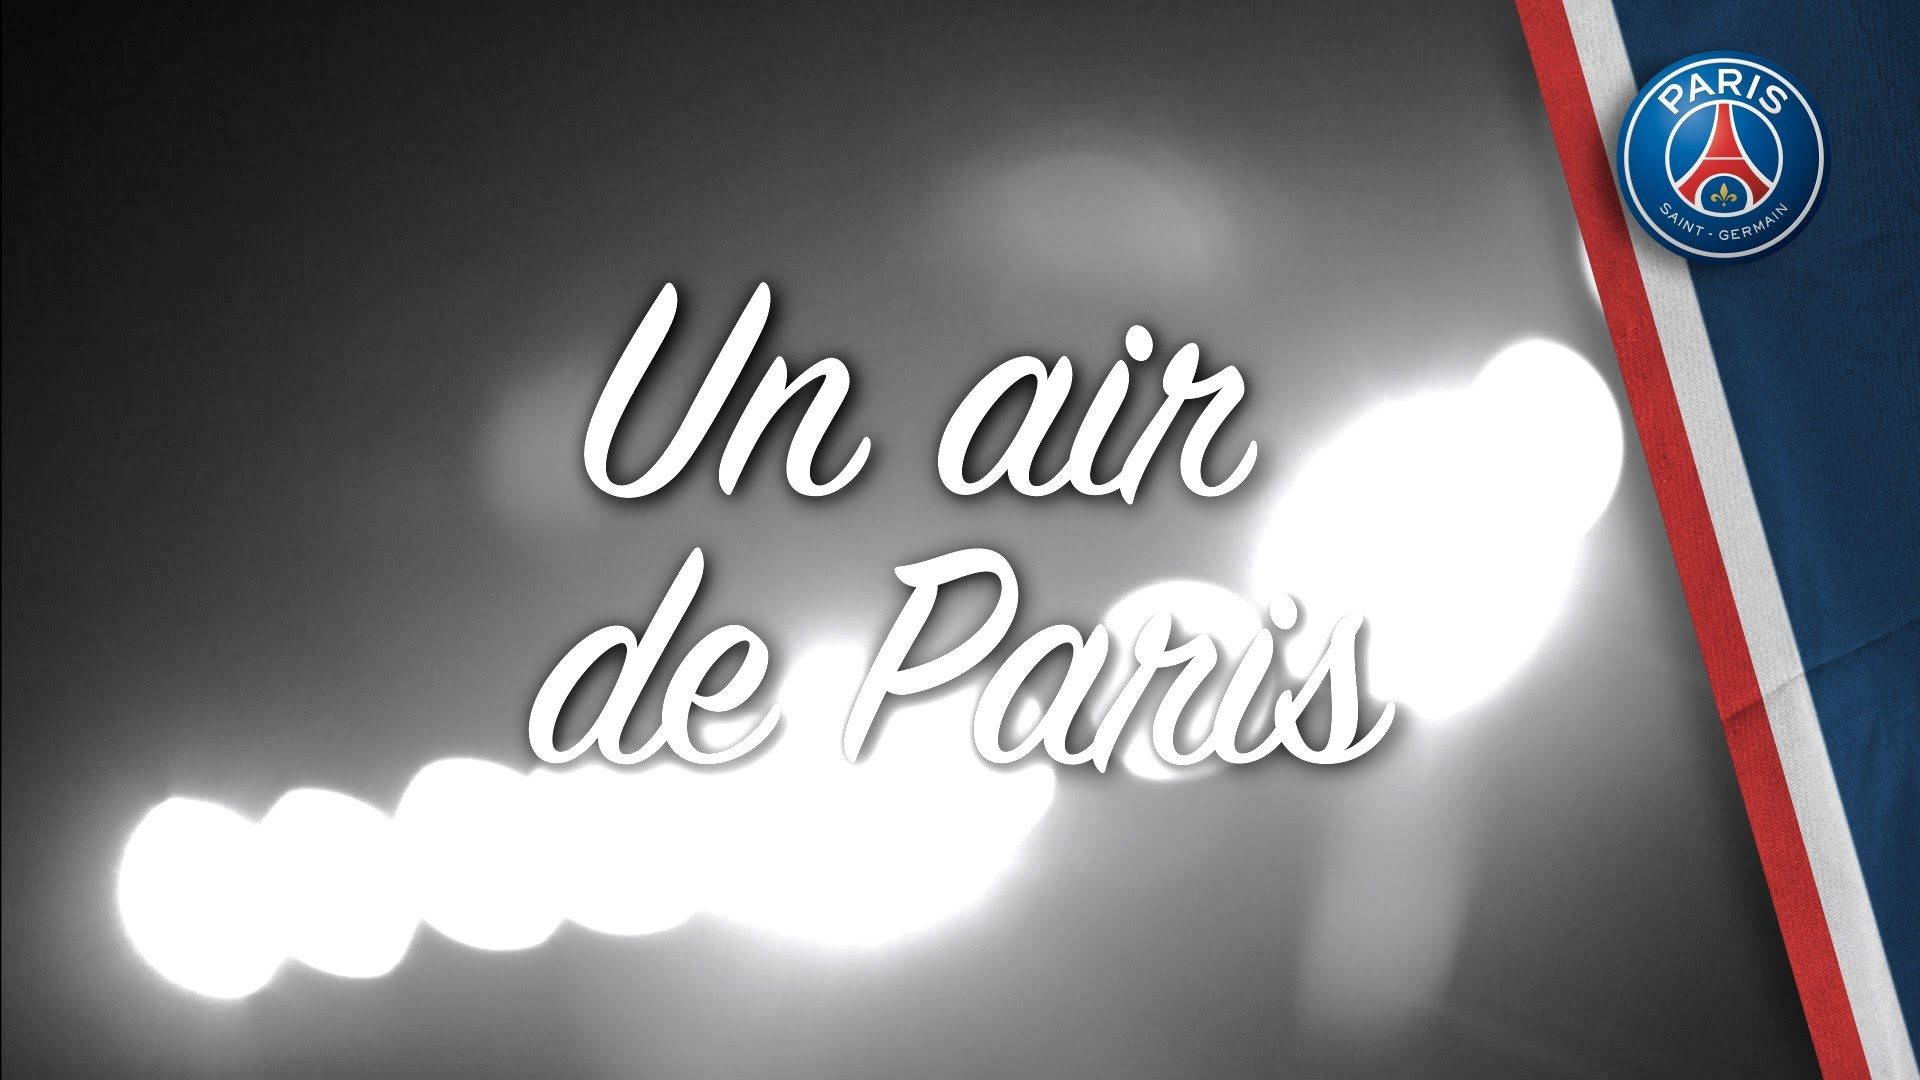 UN AIR DE PARIS